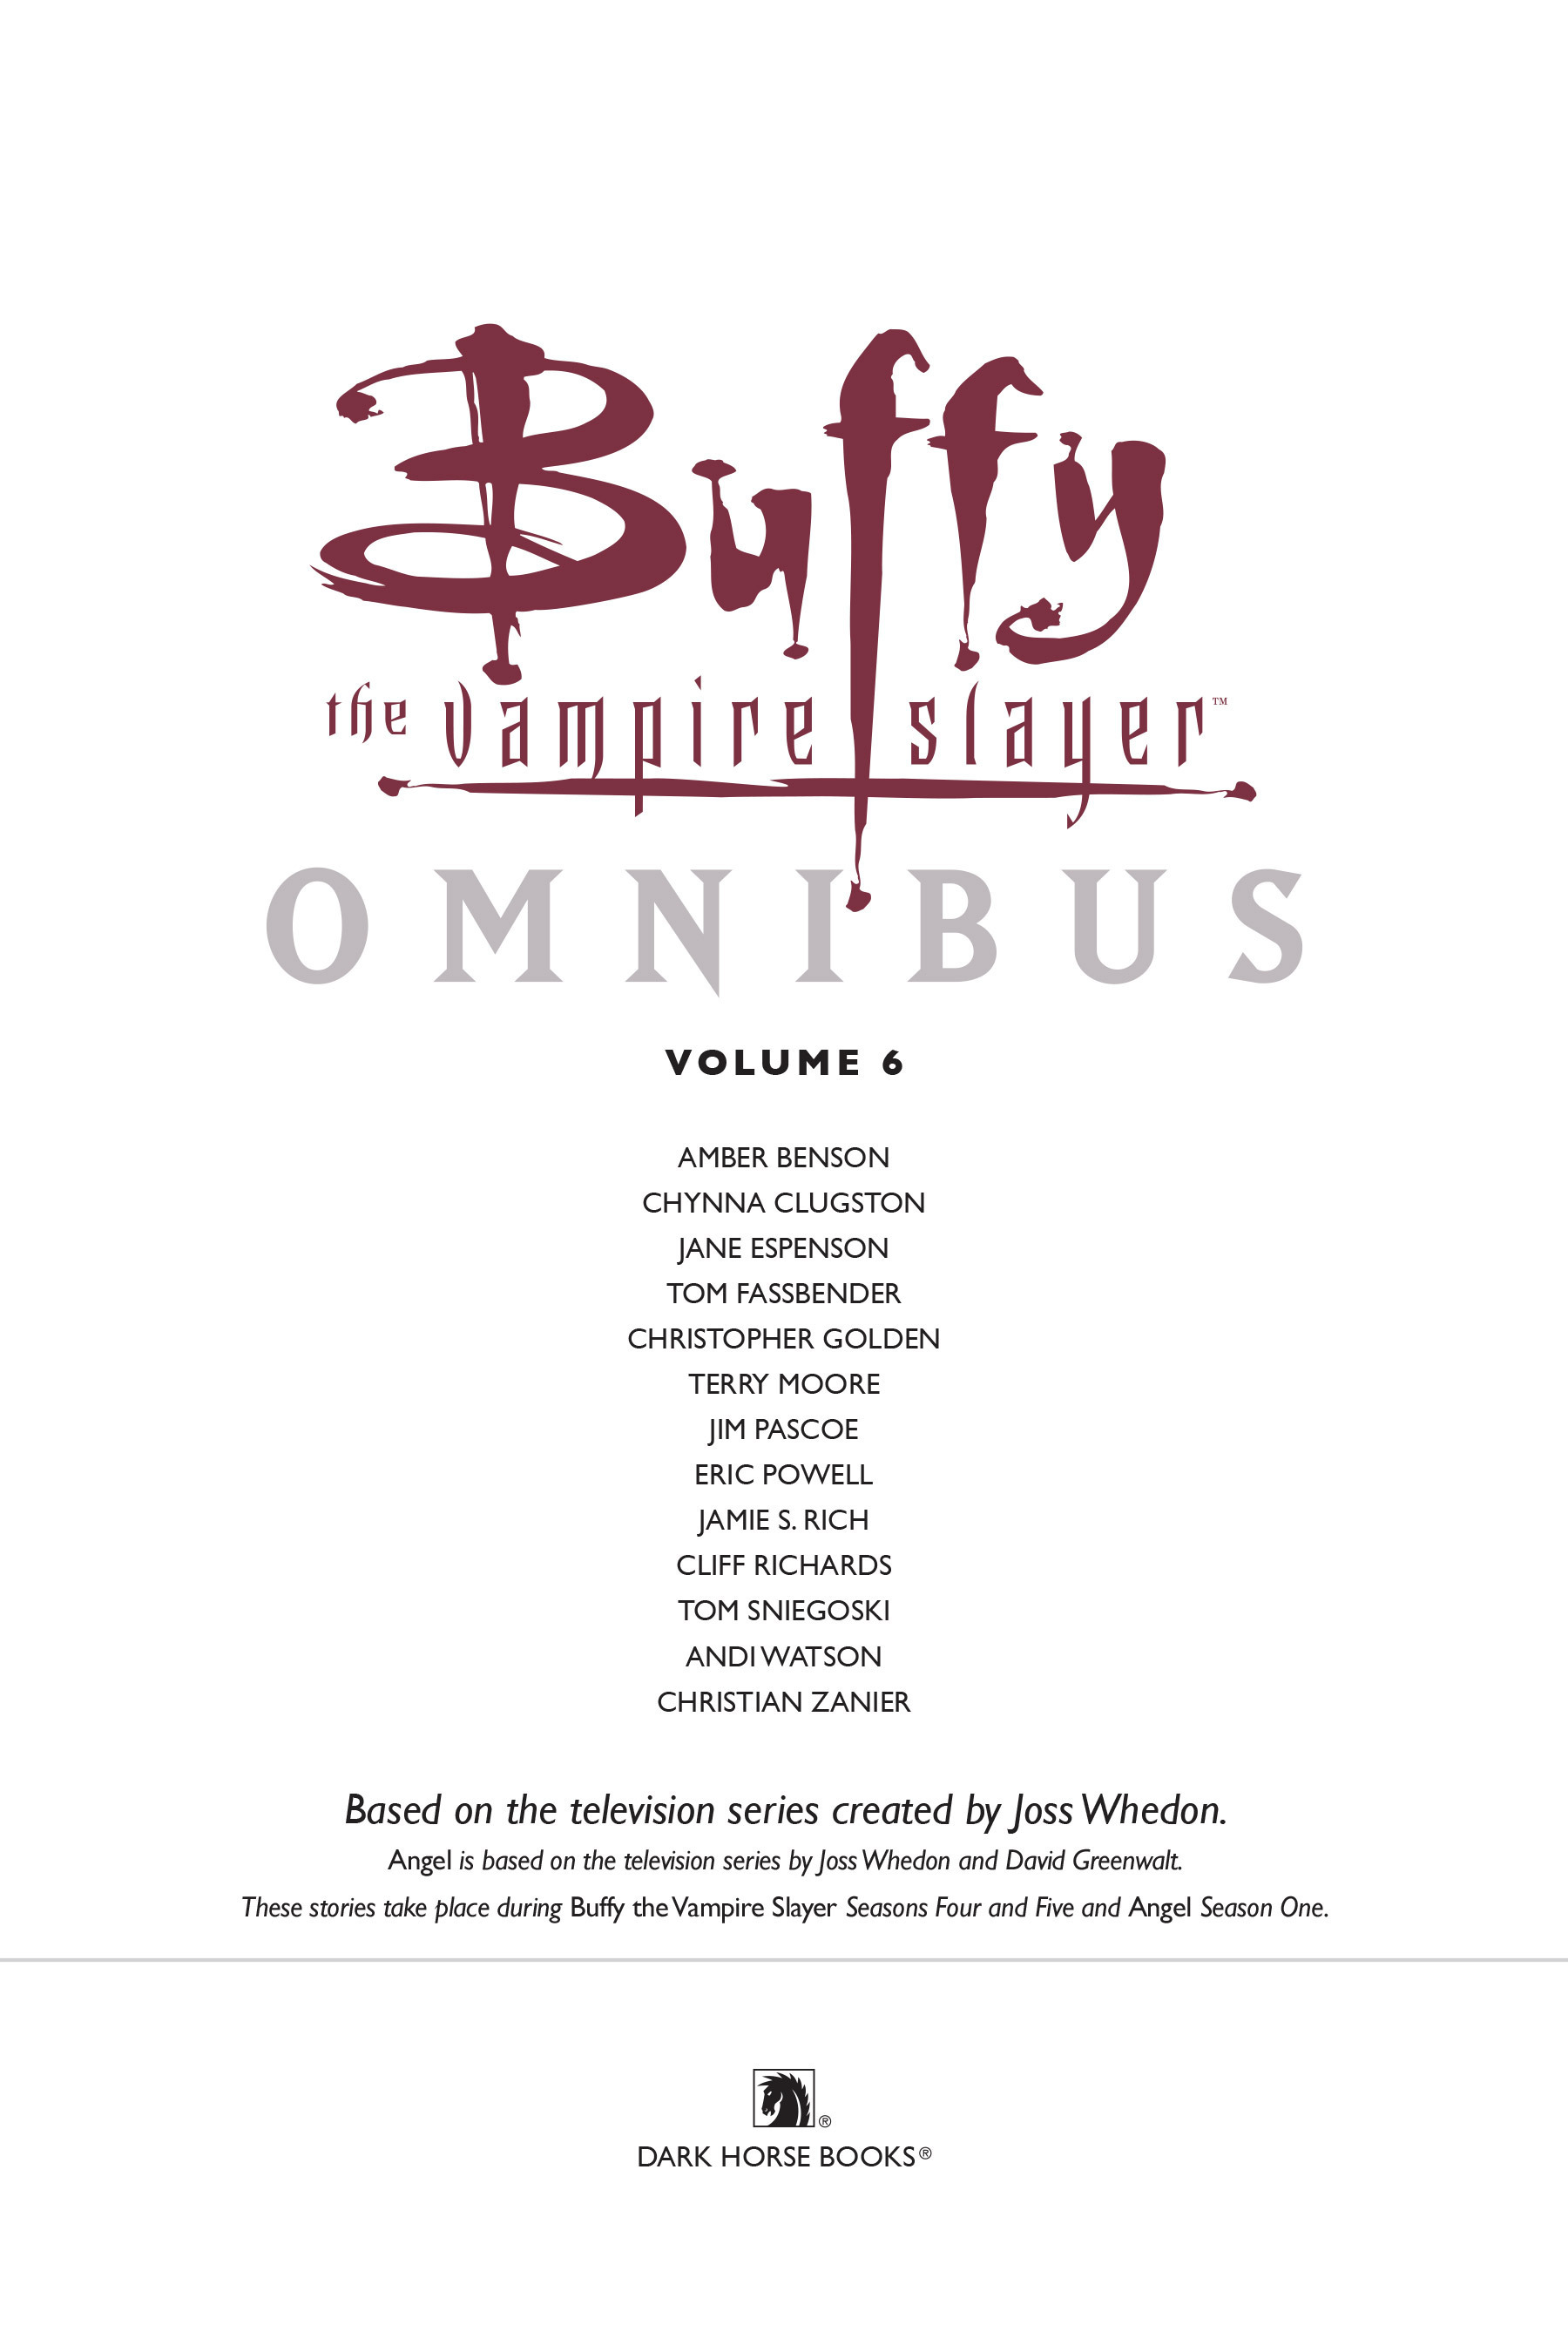 Read online Buffy the Vampire Slayer: Omnibus comic -  Issue # TPB 6 - 4